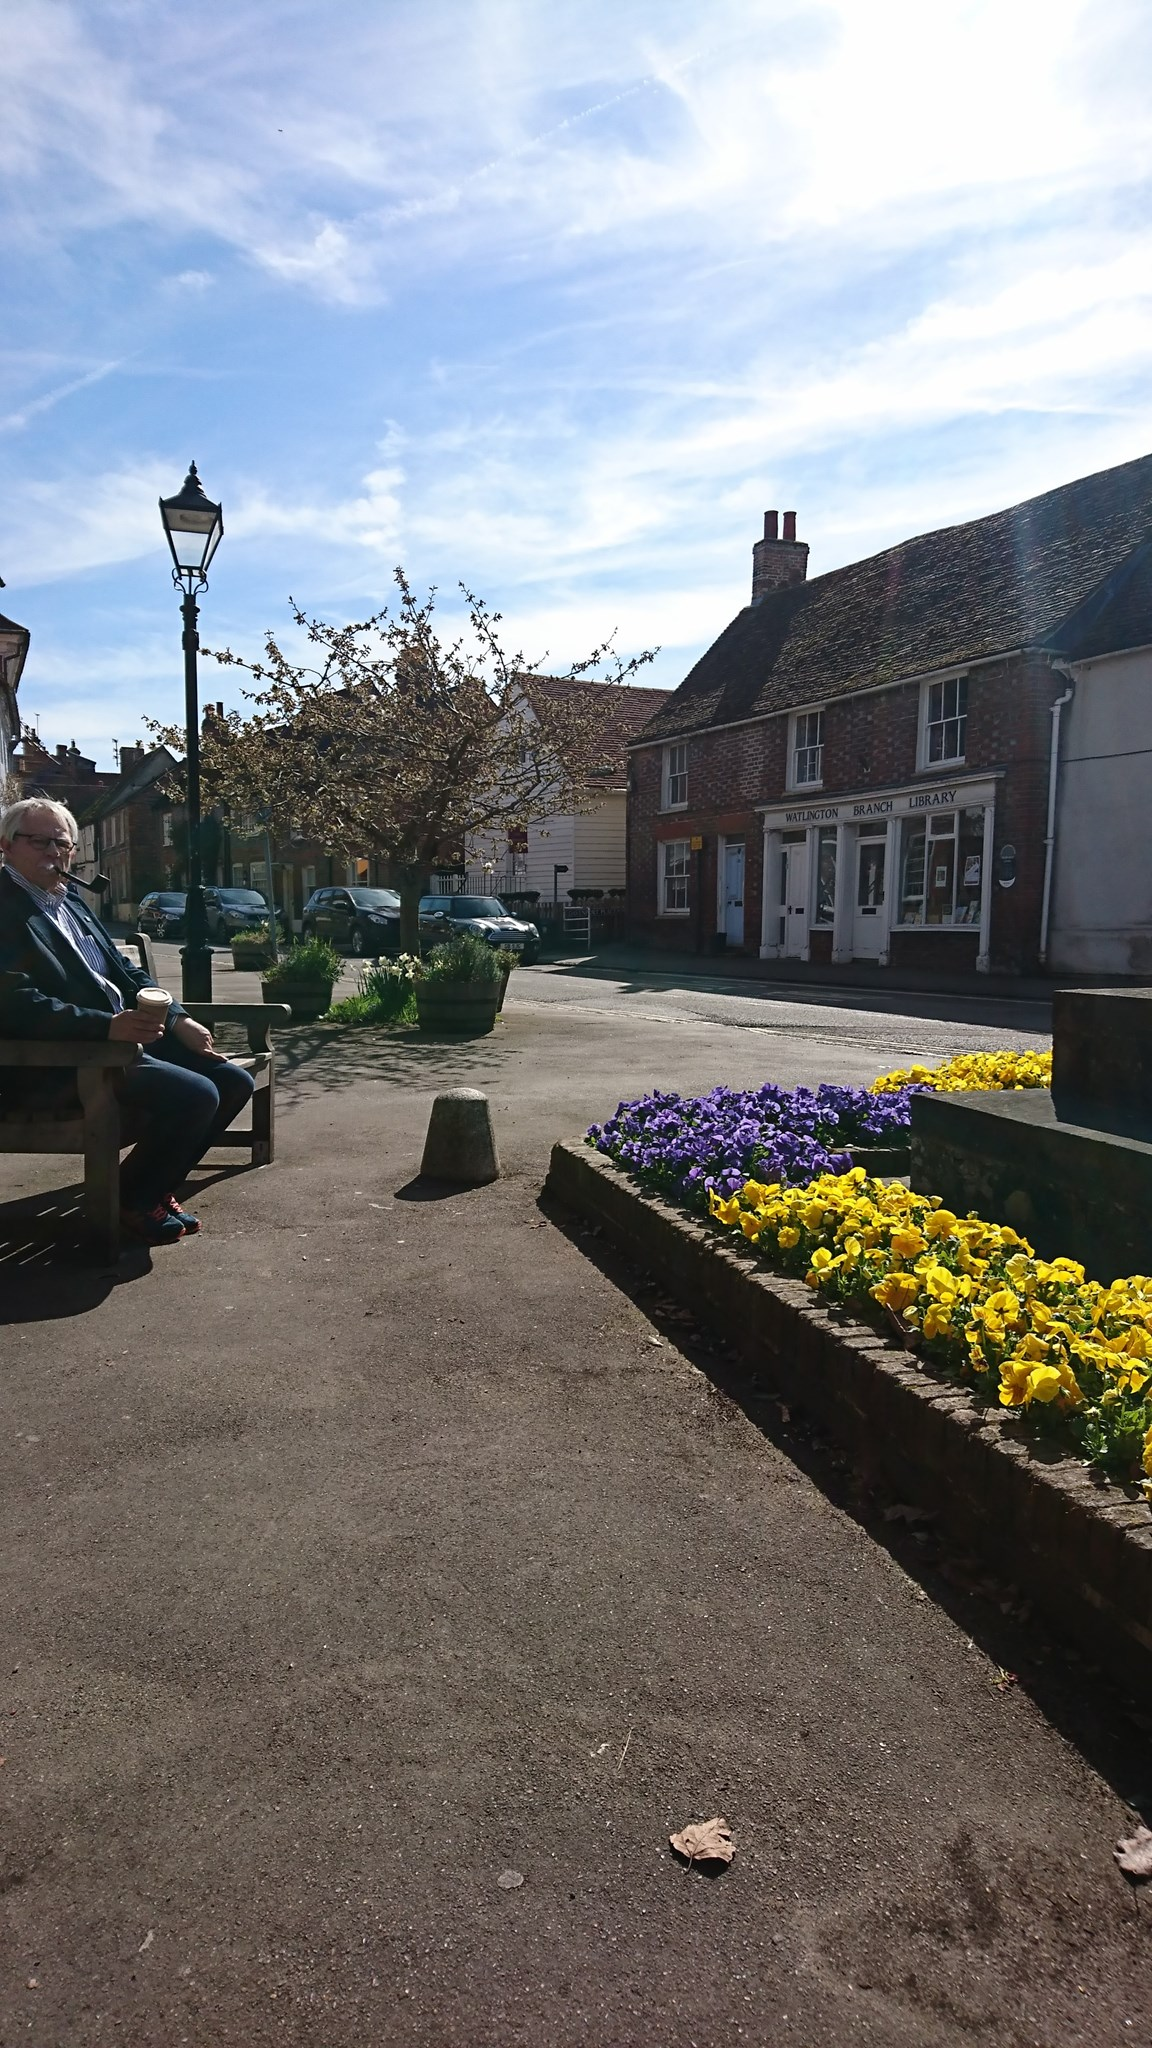 A sunny afternoon in Watlington x